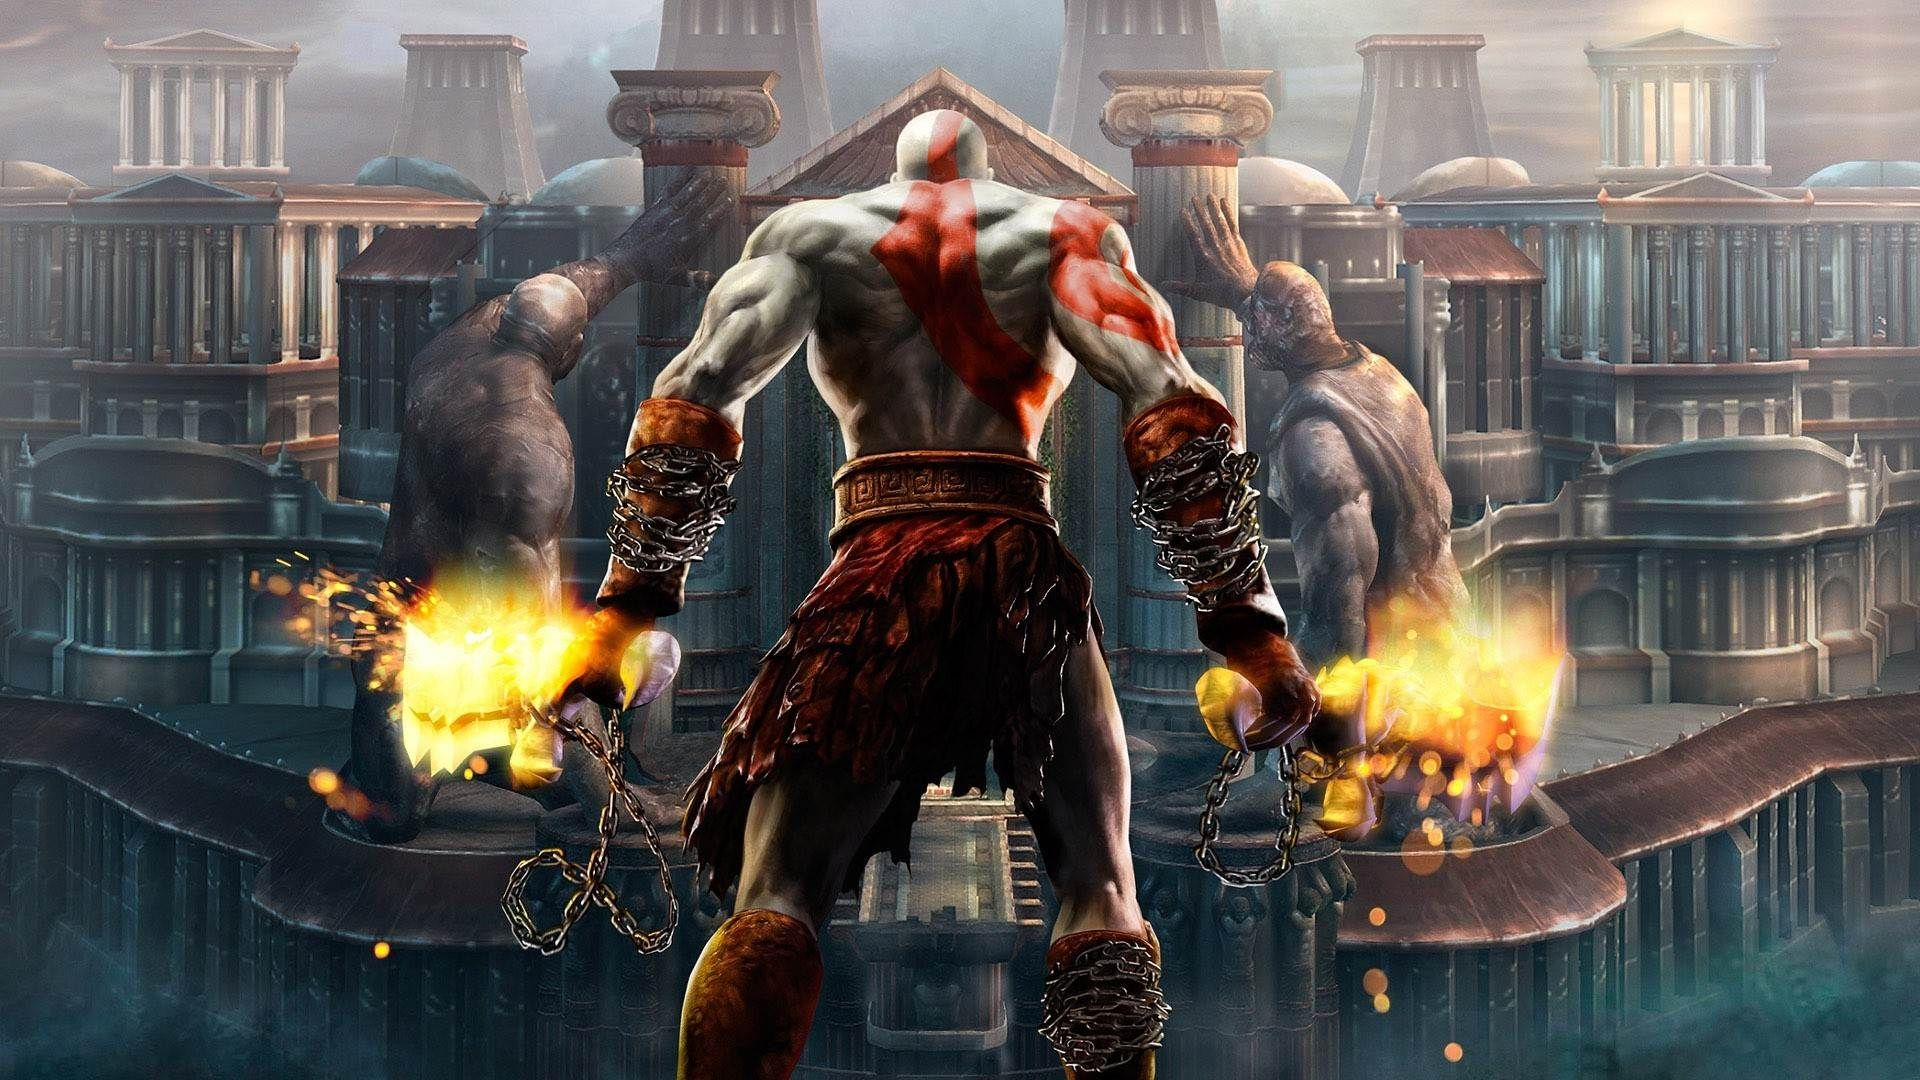 Kratos Wallpaper Full Hd 19201080 Kratos Hd Wallpapers